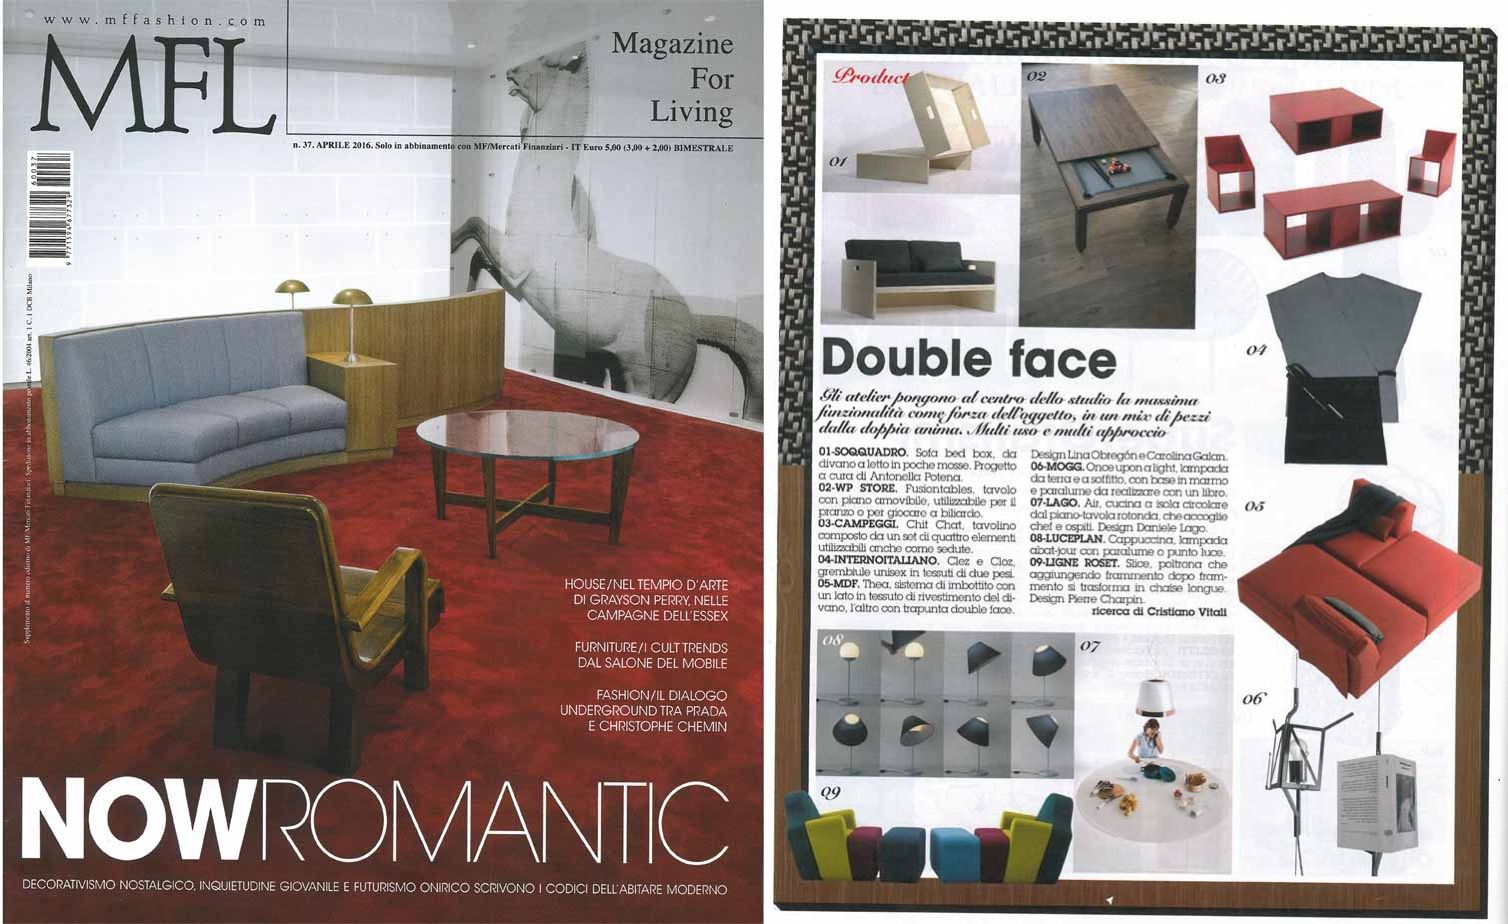 The lamp Once Upon A Light by Mogg / Design by Emanuele Magini has been featured on the Italian Magazine MFL  / http://www.mogg.it/Prodotti/Accessories/ONCE-UPON-A-LIGHT/  #mogg #moggdesign #EmanueleMagini #OnceUponALight #Lamp #CeilingLamp #FloorLamp #Lighting #Interior #Design #InteriorDesign #Italian #Furniture #ItalianFurniture #Magazine #MFL #Living